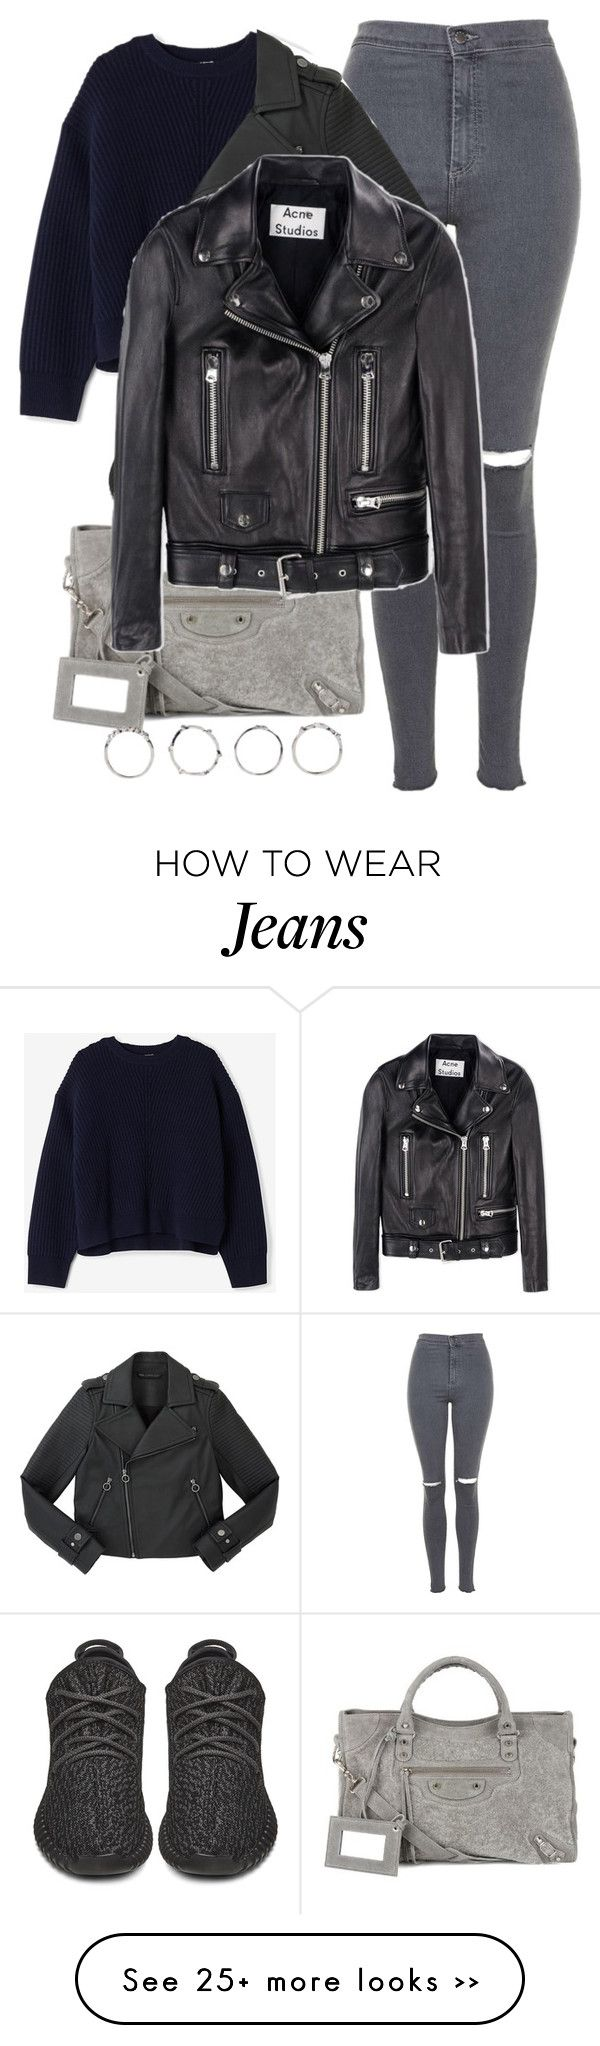 """Untitled #8203"" by katgorostiza on Polyvore featuring Topshop, Acne Studios, Balenciaga, Boohoo and Marc by Marc Jacobs"